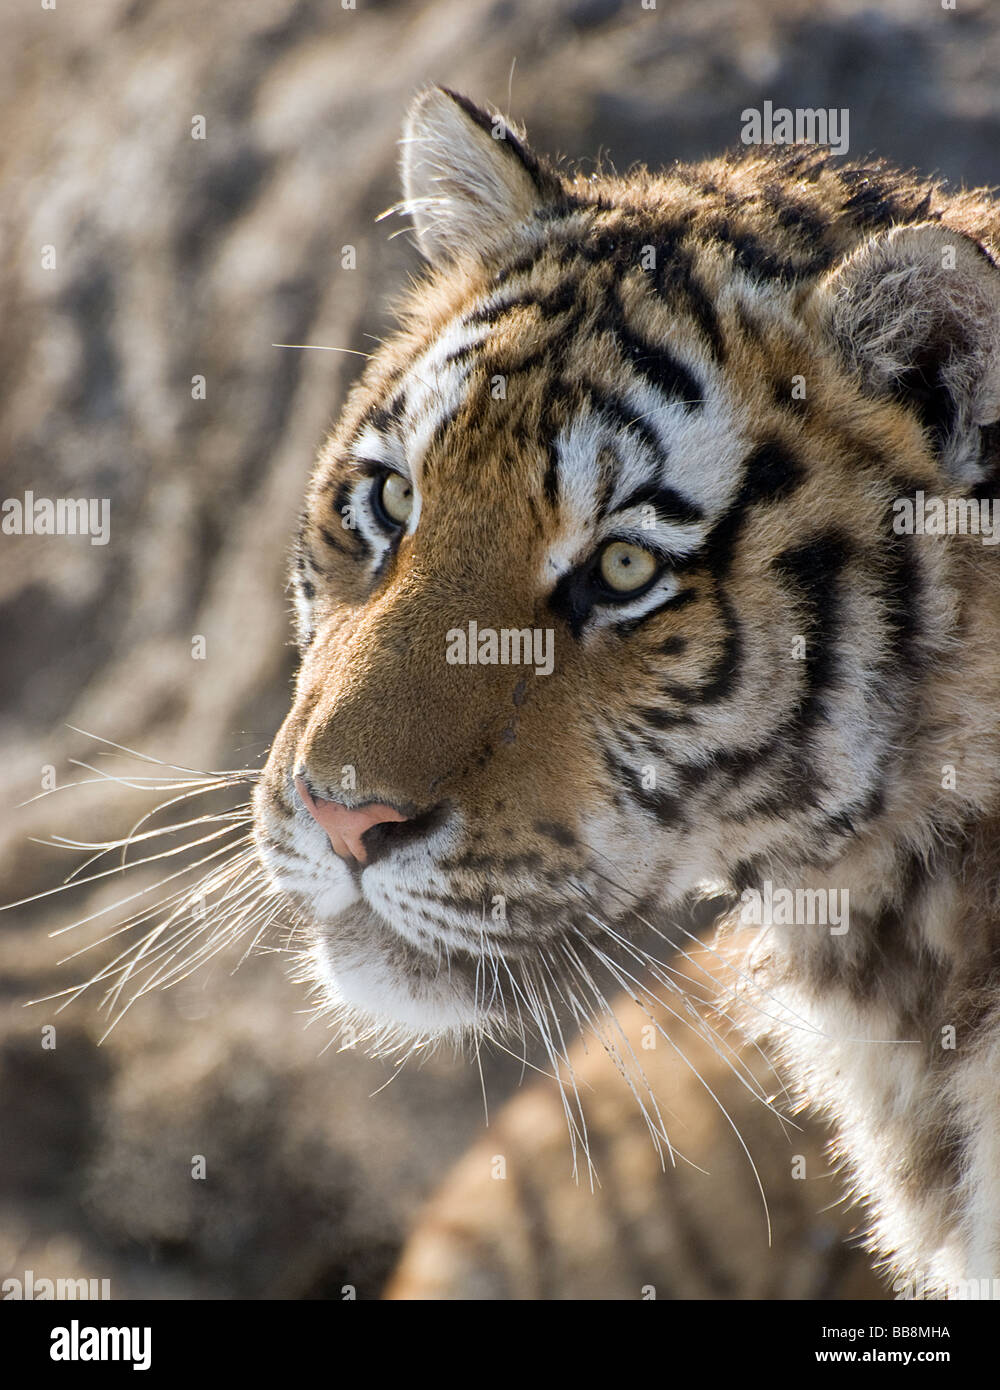 Head of a siberian tiger - Stock Image